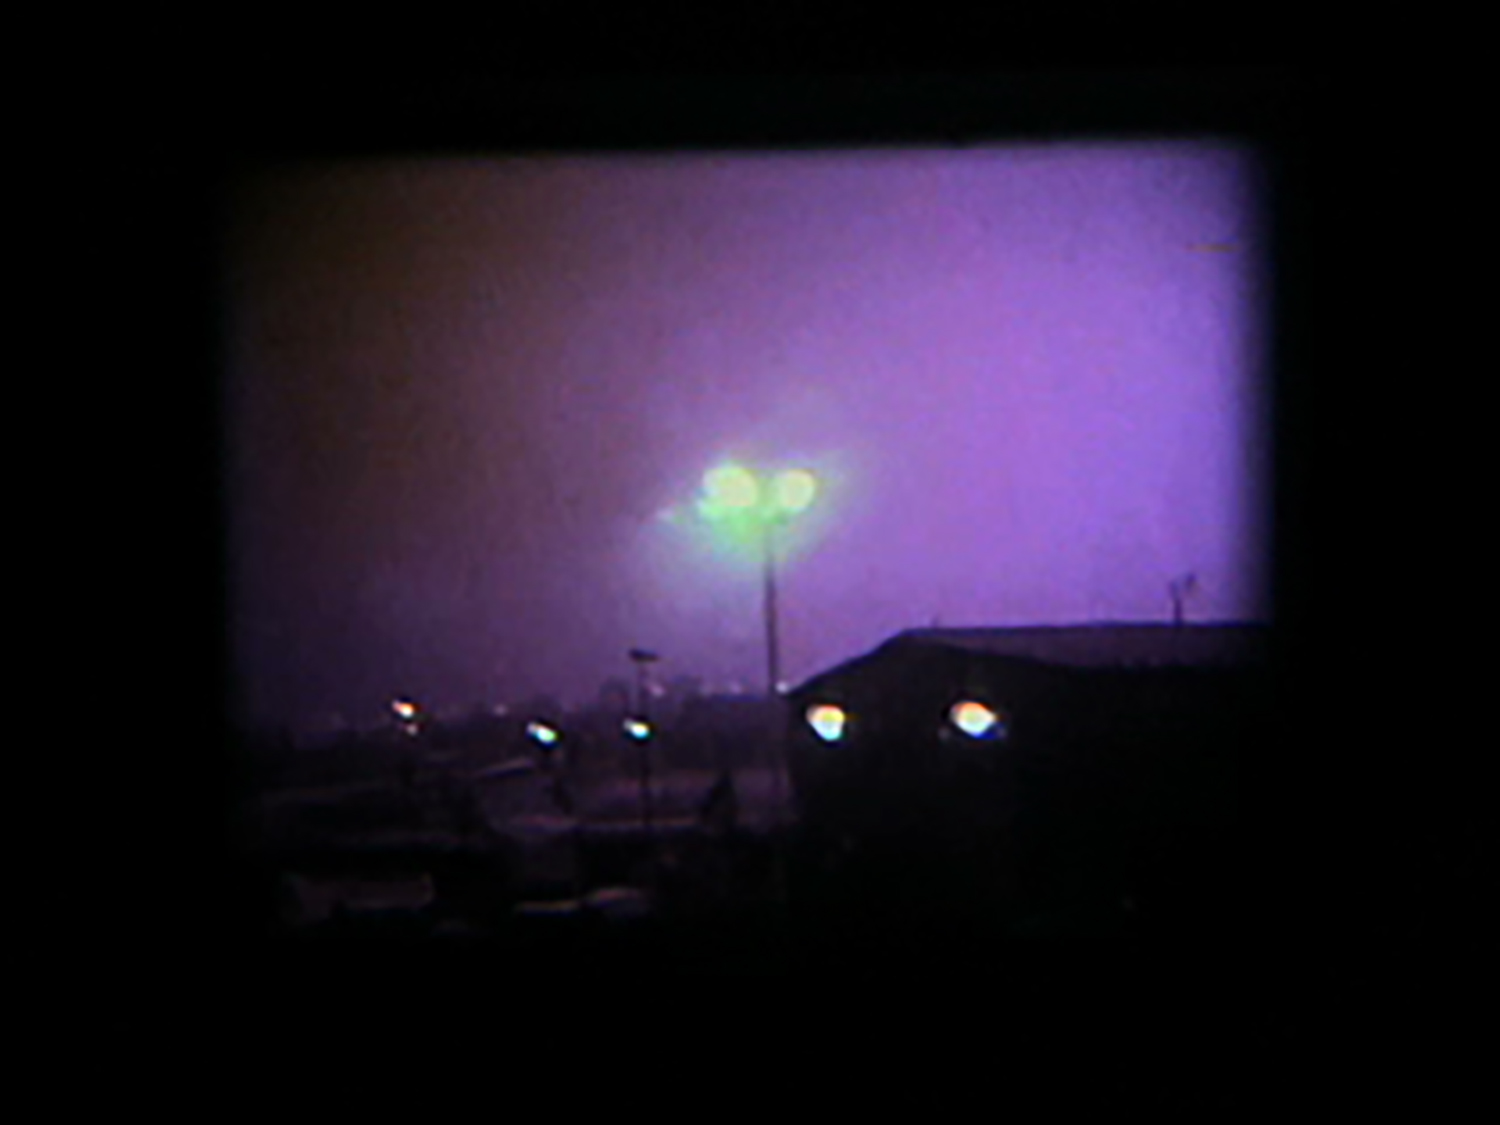 Peoria Gist [2009] super 8, 1:00 - Part of the New Media New Music New England 60 x 60 project, the film documents a layover in an average American city and is an exercise in random construction.